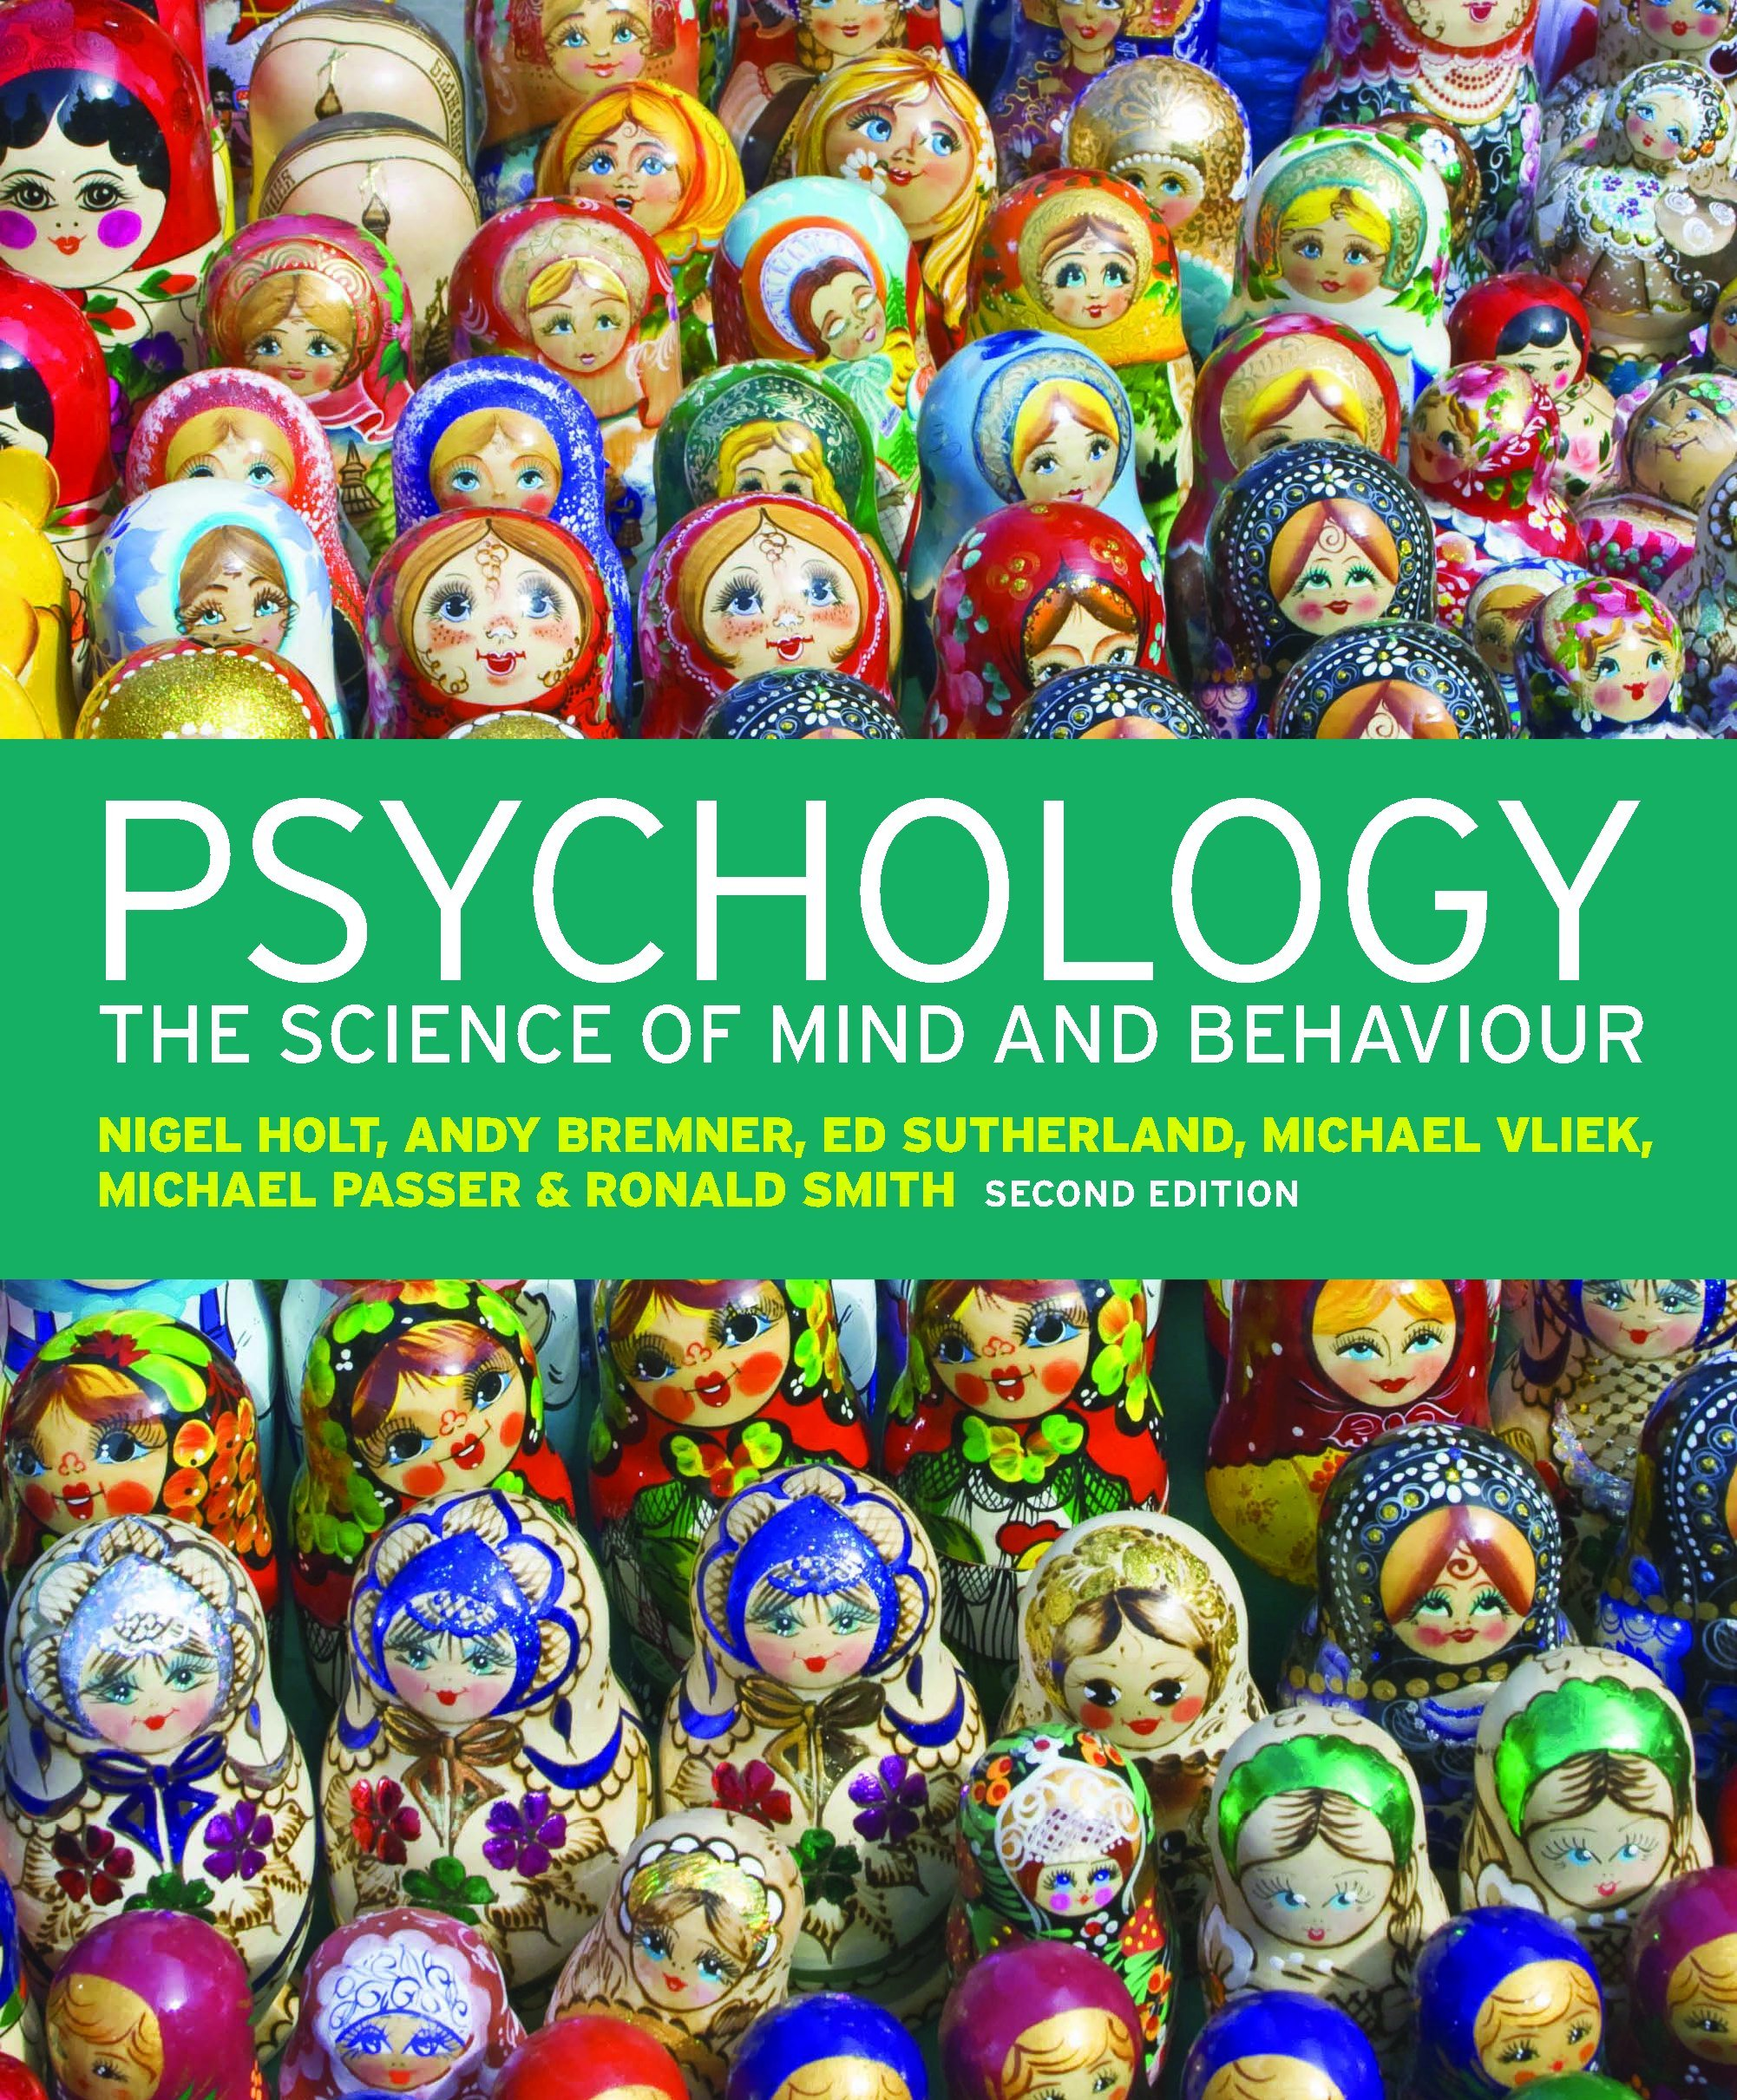 Psychology the science of mind and behaviour amazon michael psychology the science of mind and behaviour amazon michael w passer ronald e smith 8601404213816 books fandeluxe Gallery